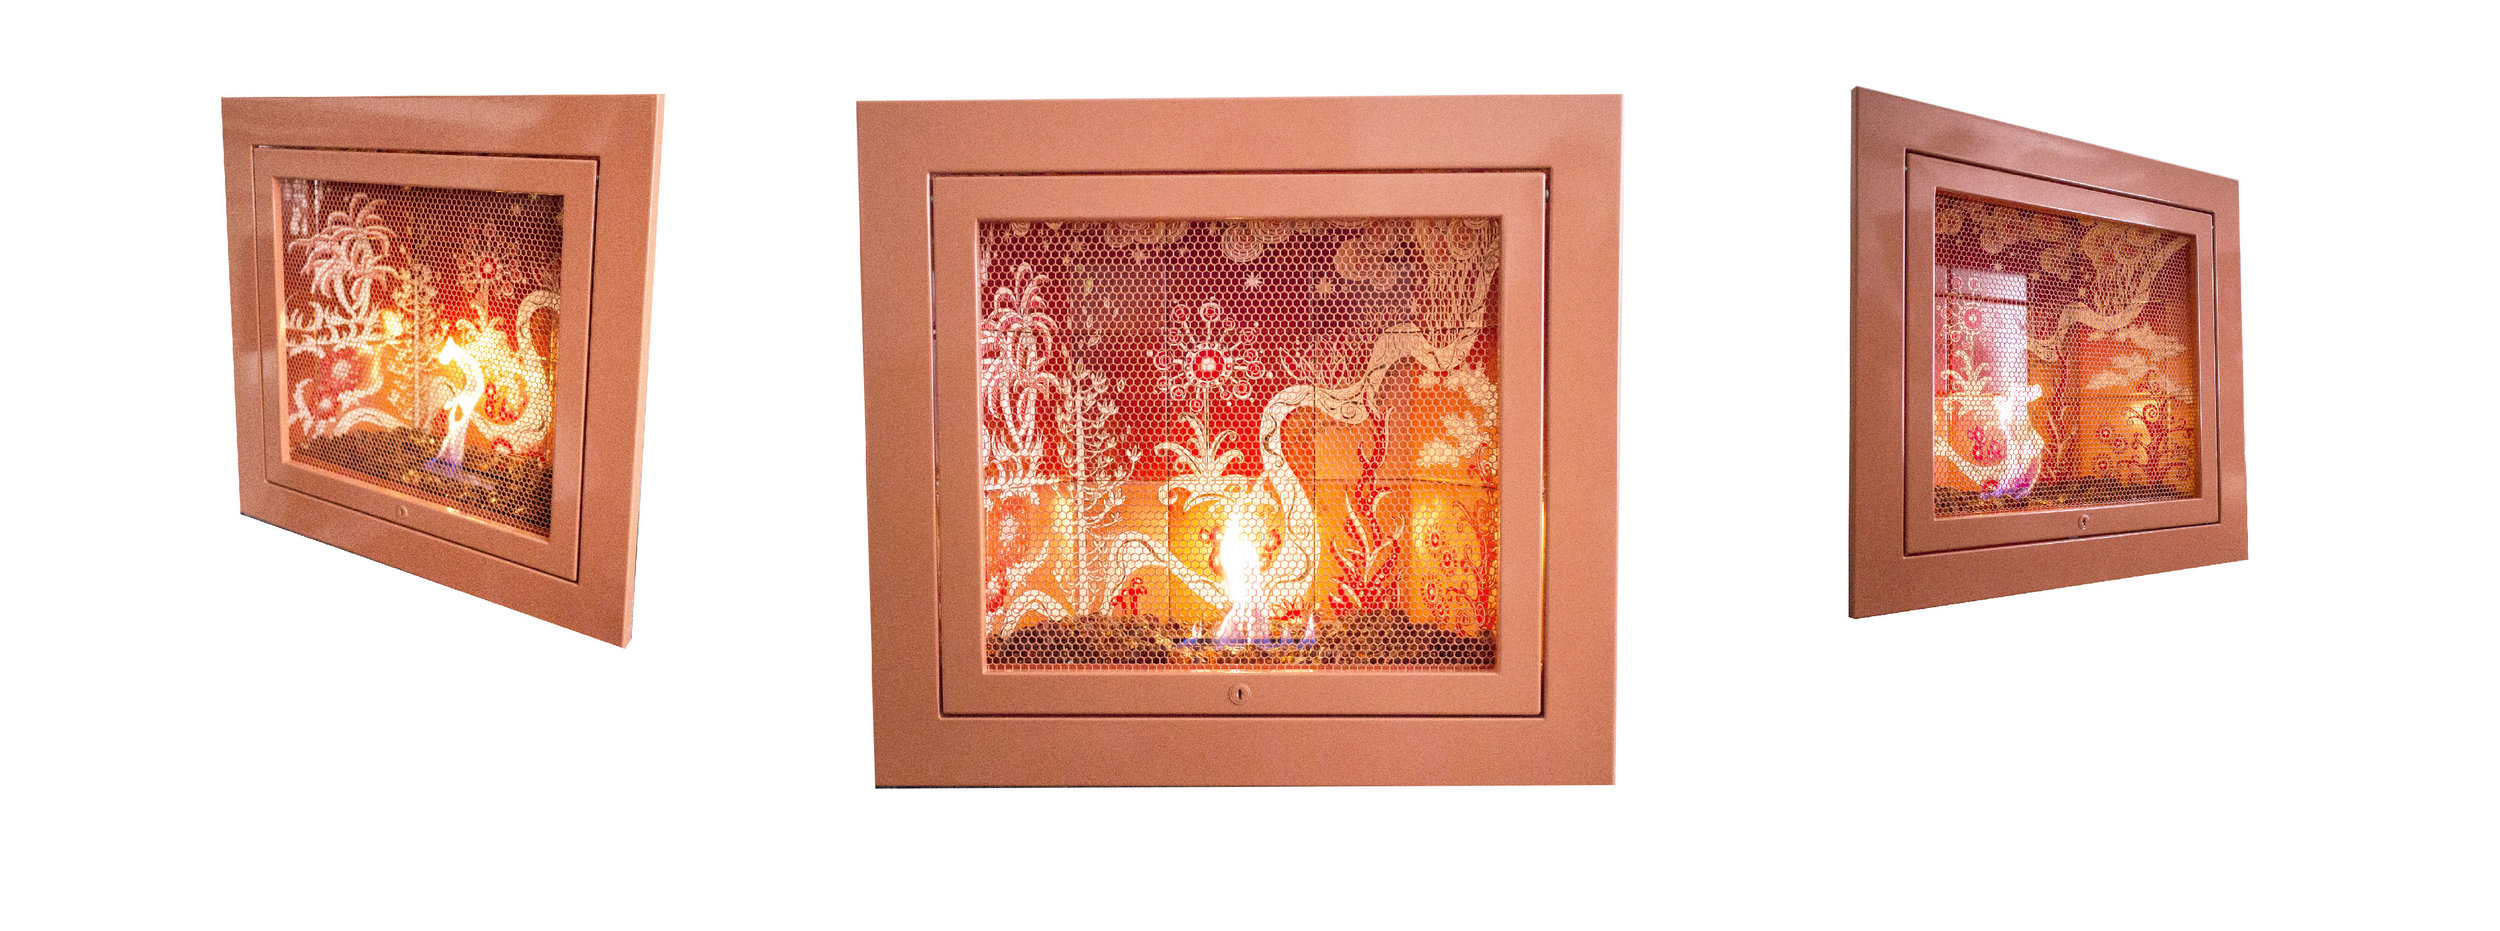 Living Coral KI™ Series by HearthCabinet® Ventless Fireplaces  Hand-Painted tile by  Melinda Mezey